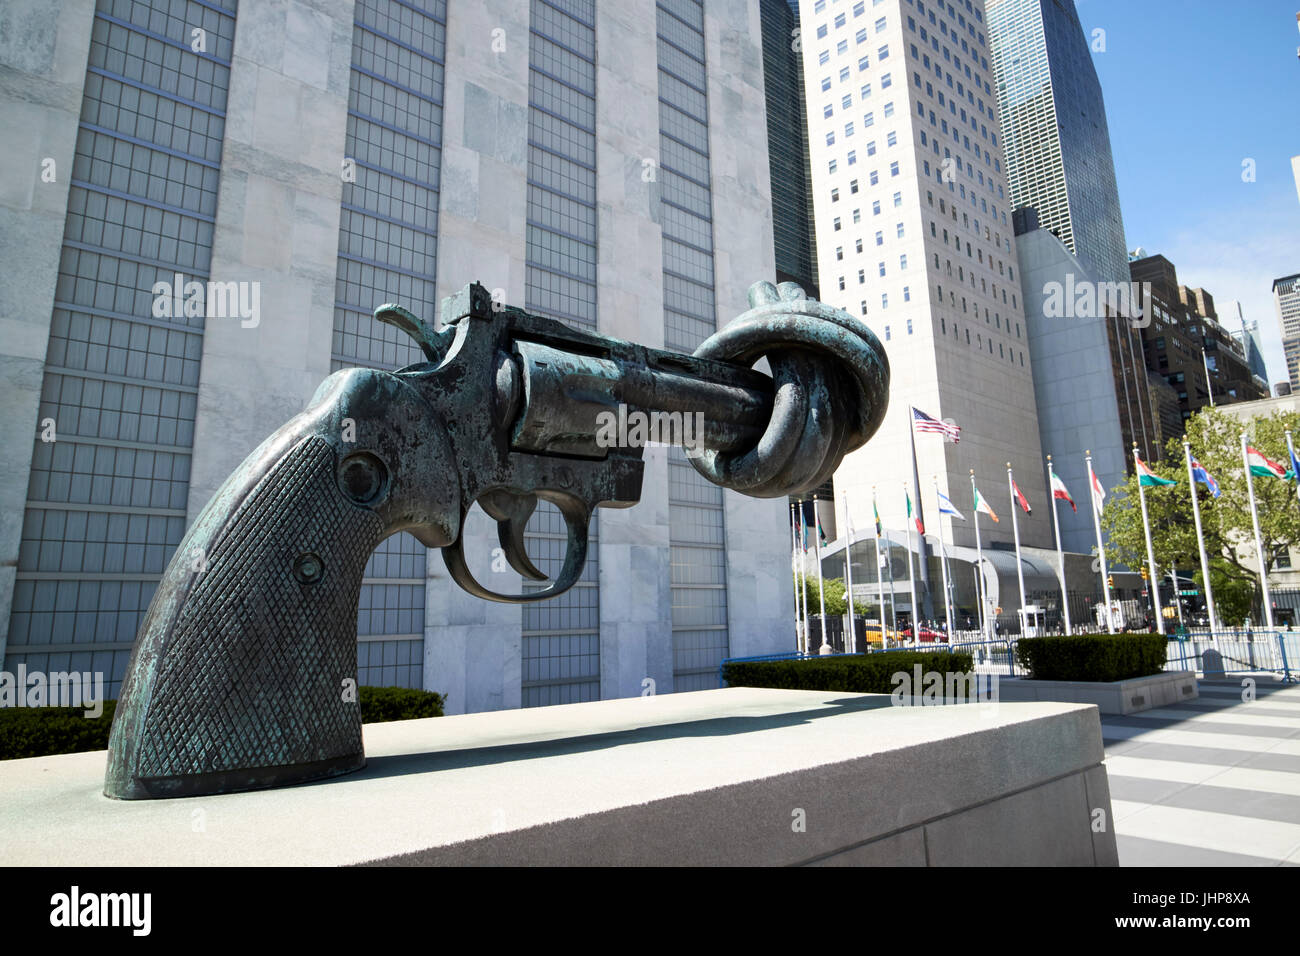 tied gun barrel non-violence sculpture in the grounds of the united nations New York City USA Stock Photo